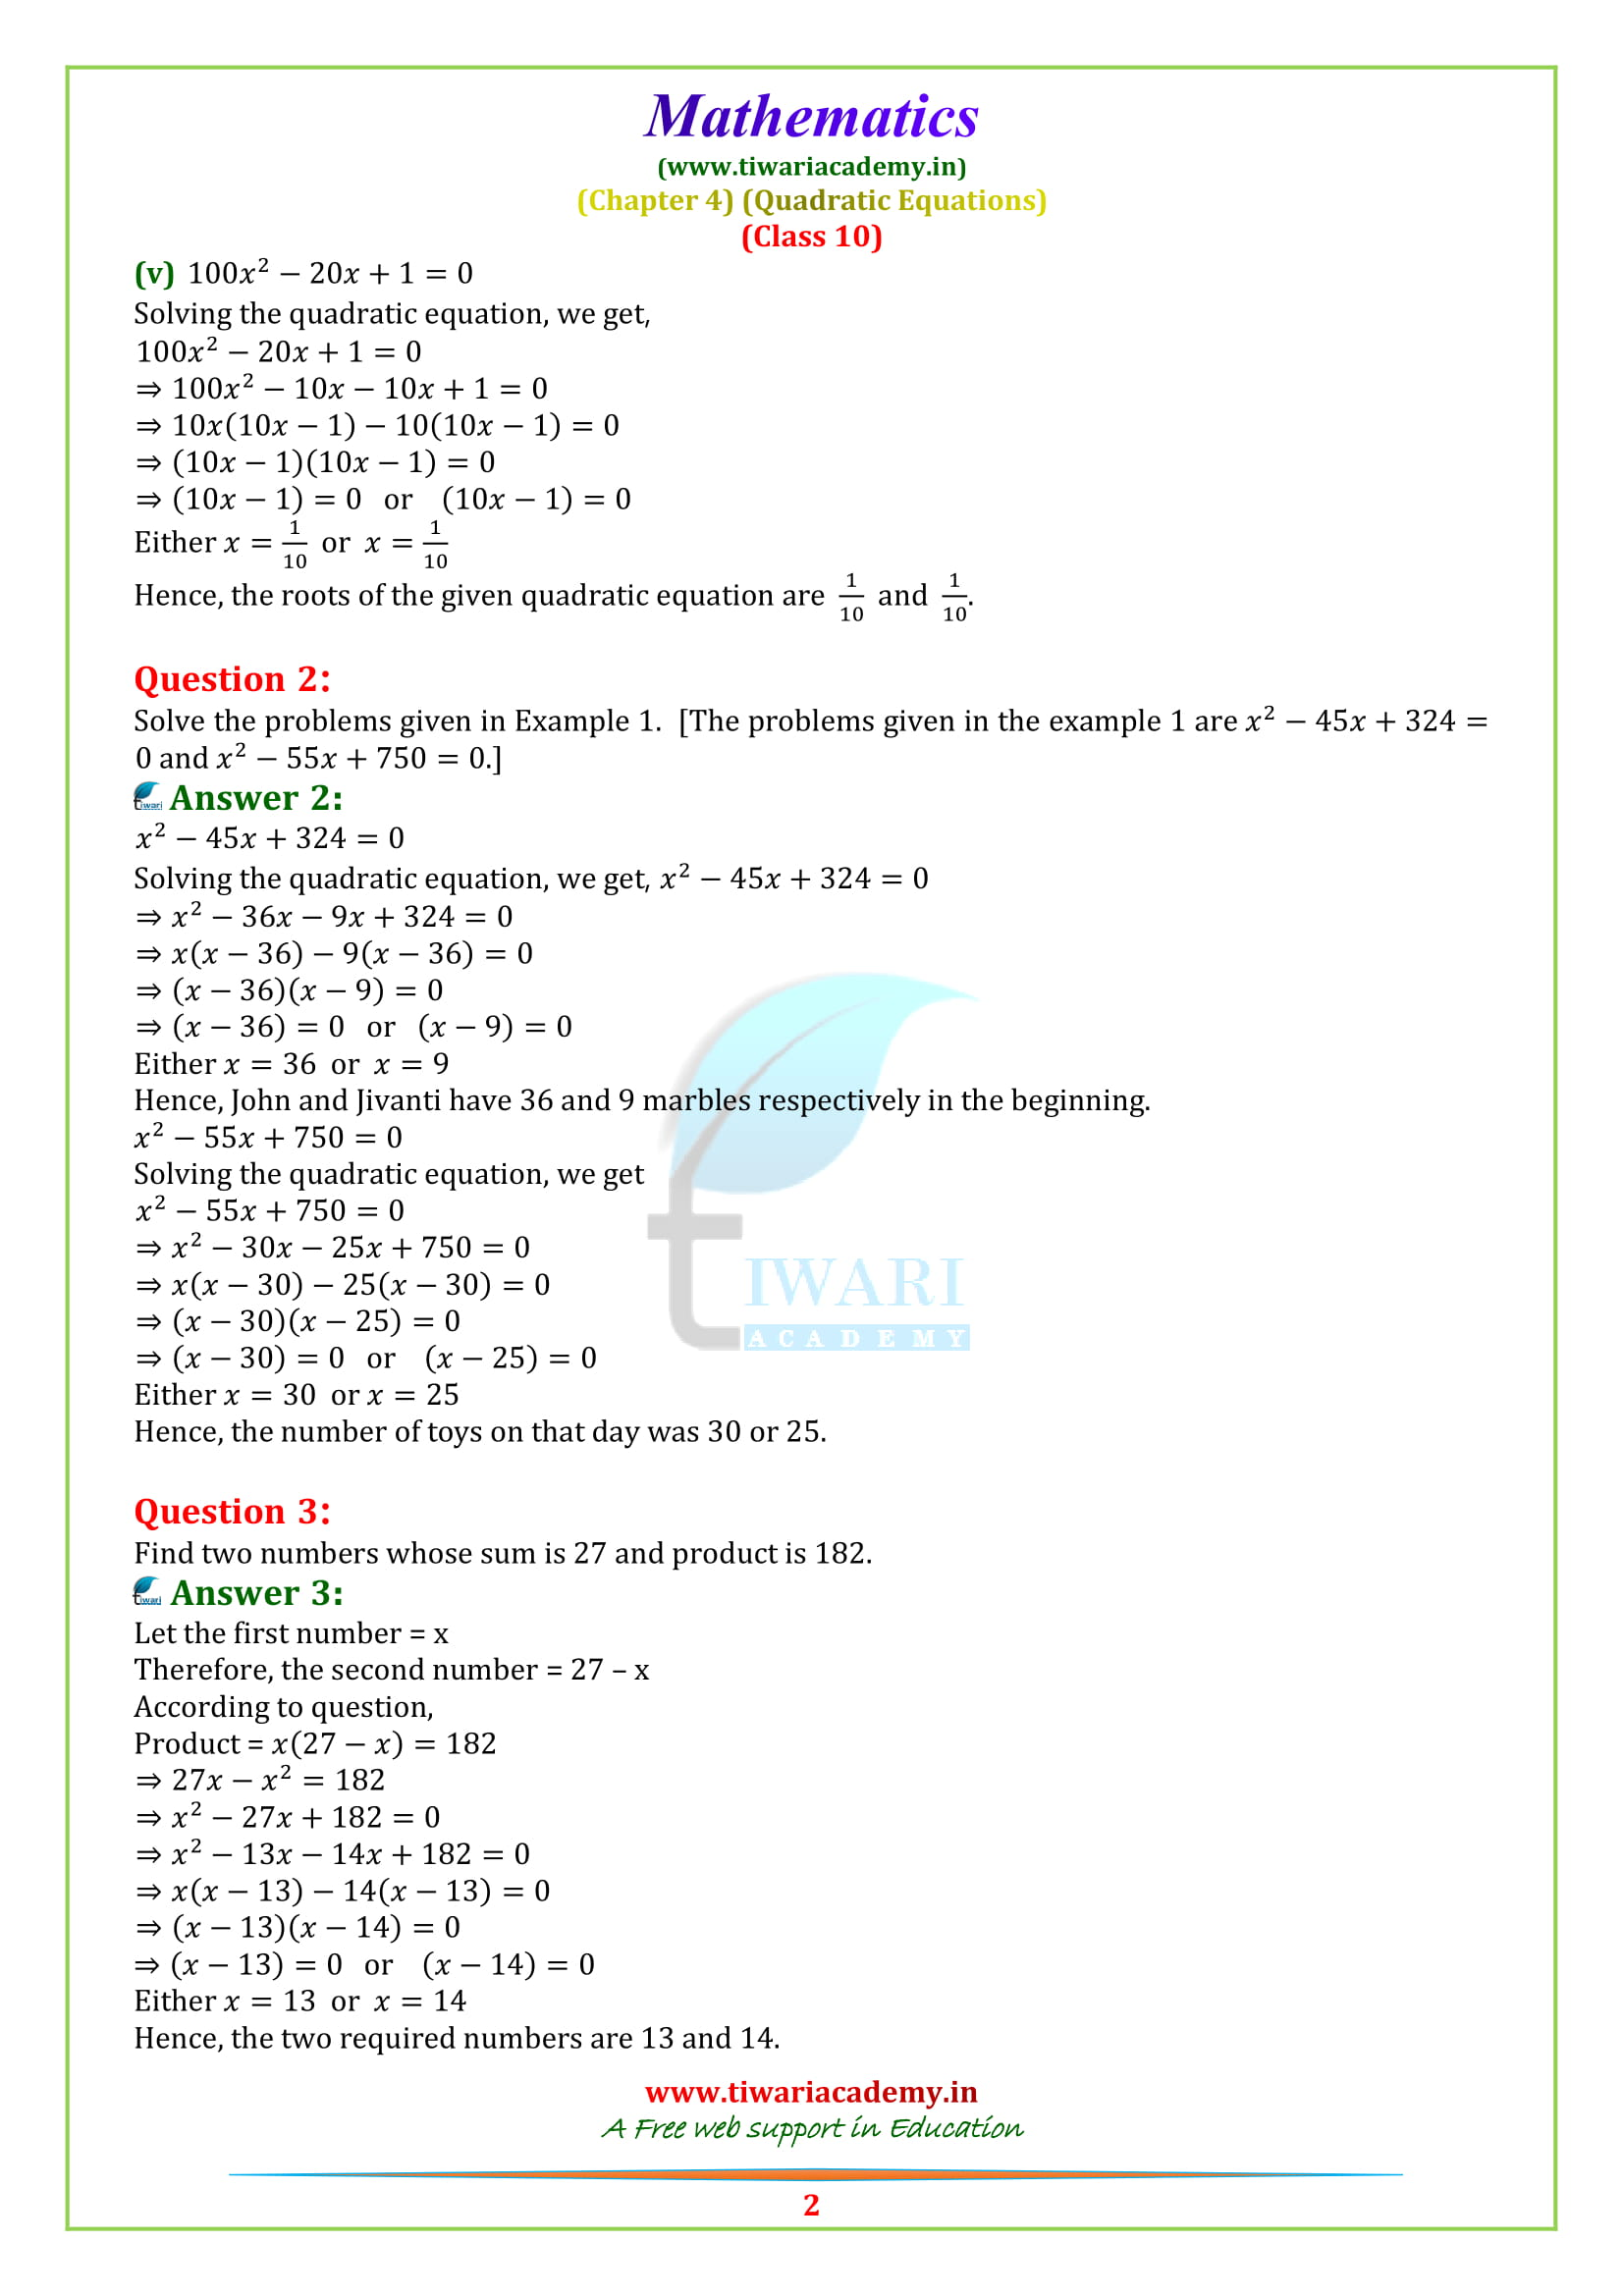 Class 10 Maths Exercise 4.2 solutions updated for 2019